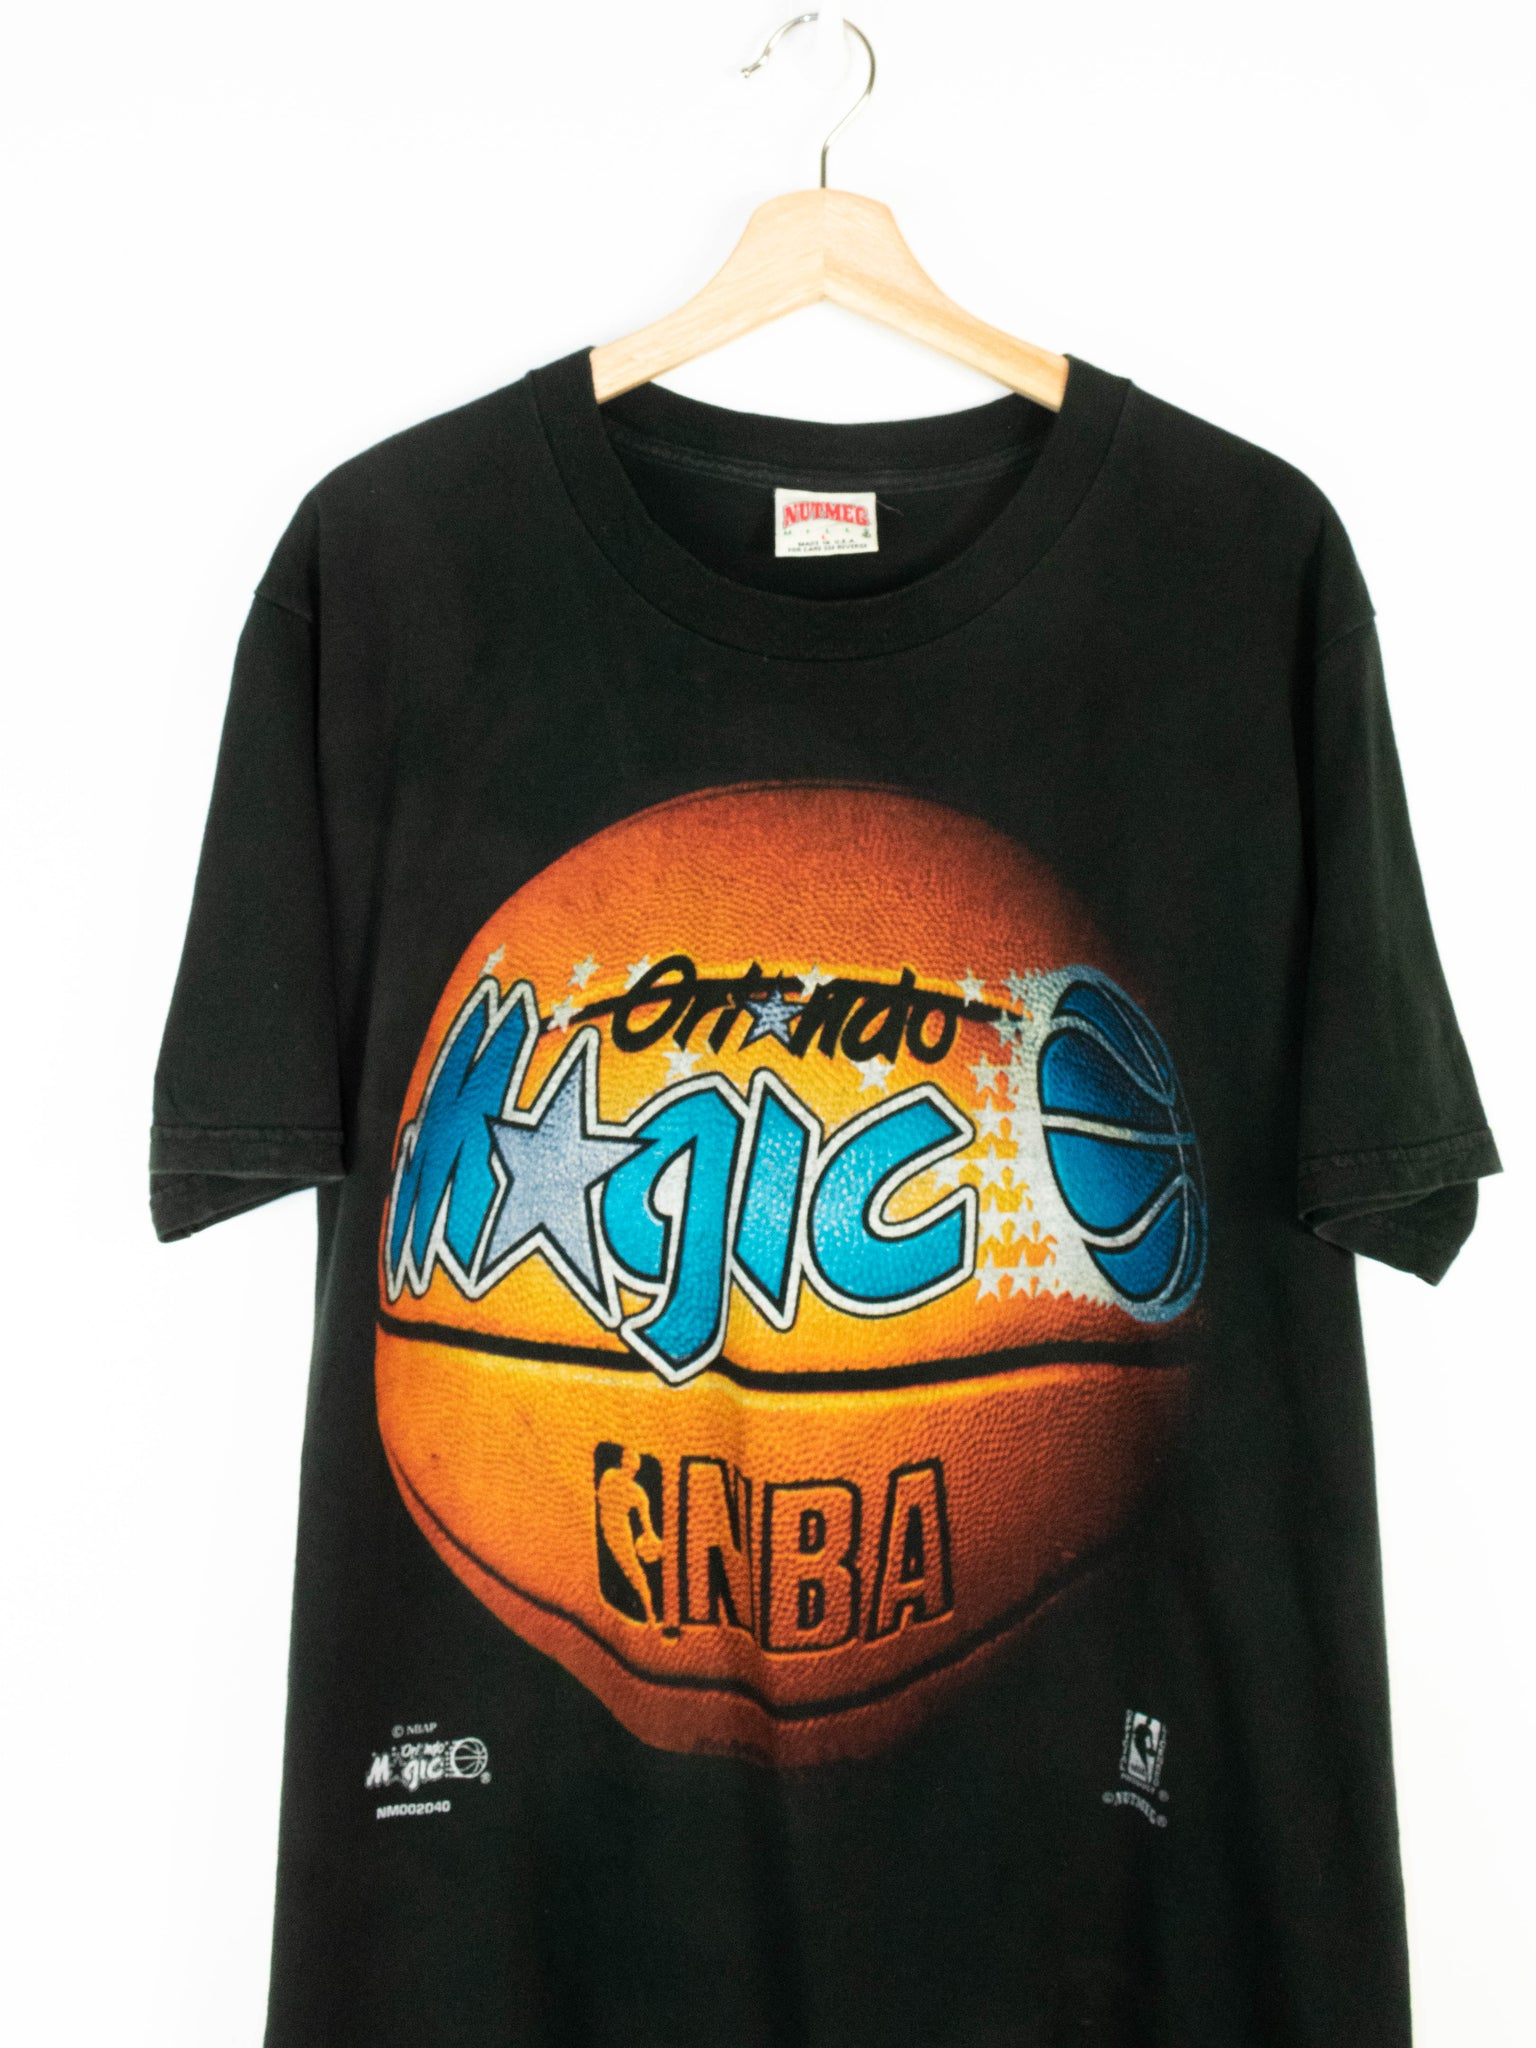 Vintage Orlando Magic NBA T-shirt size: M